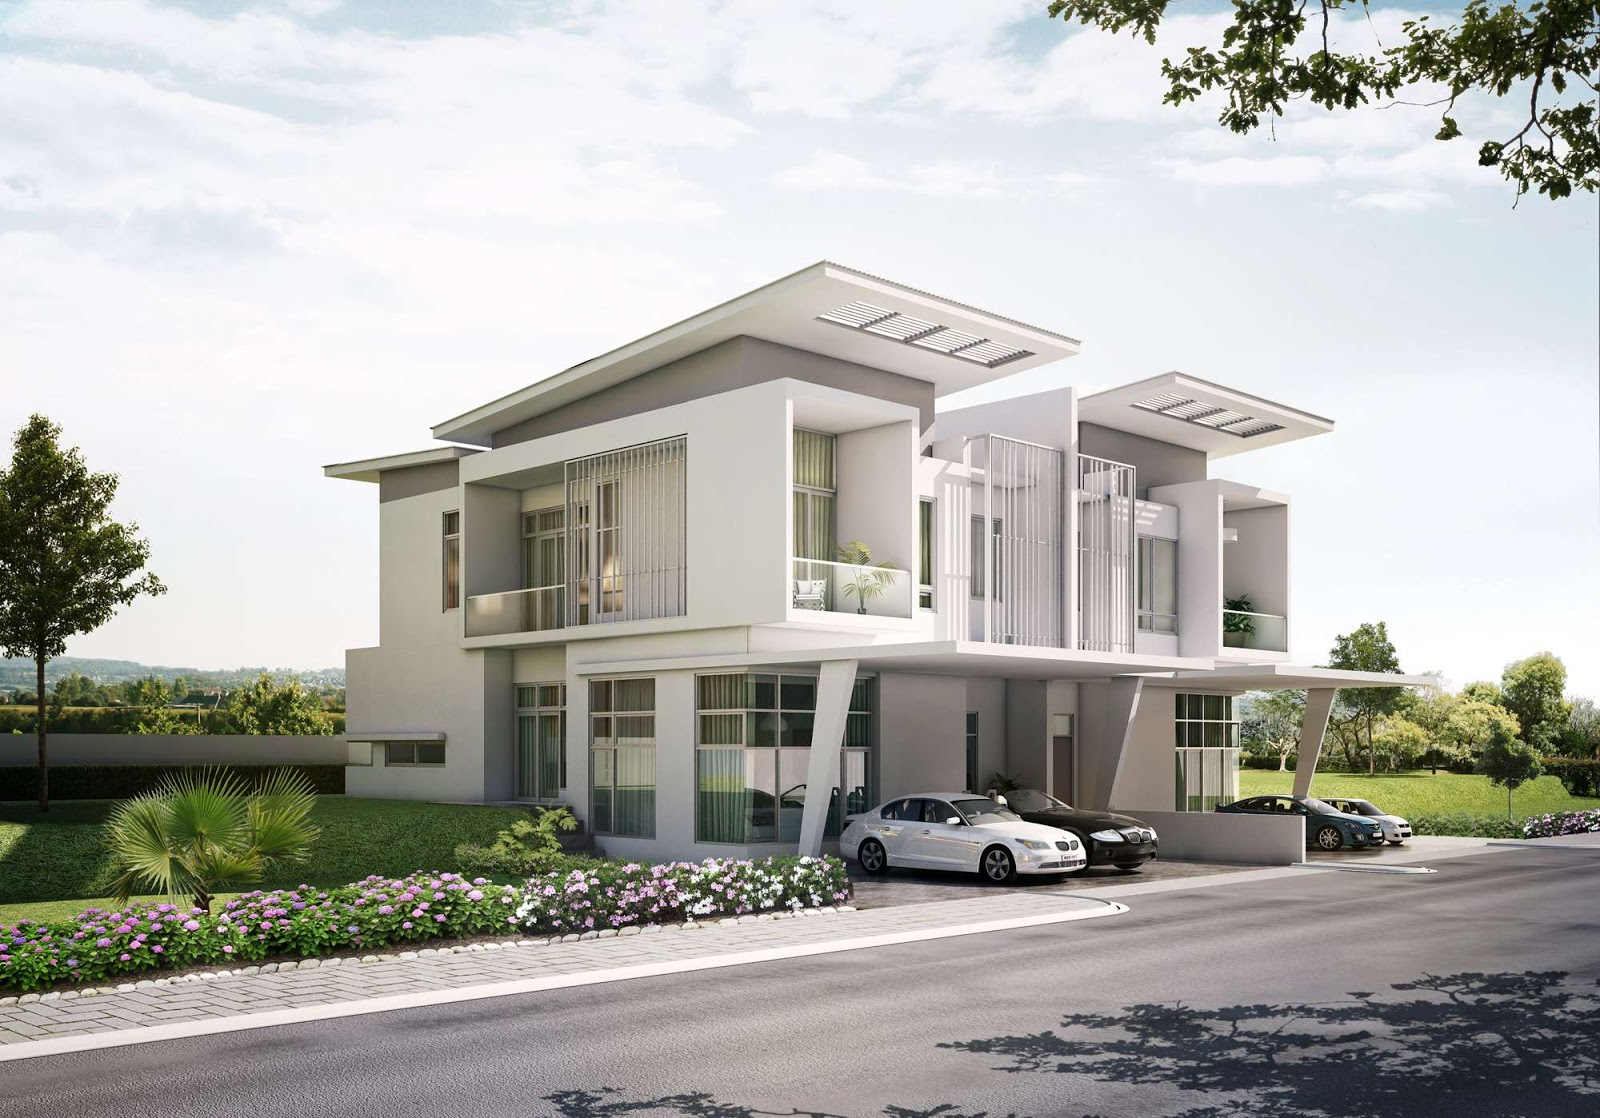 New home designs latest singapore modern homes exterior Simple beautiful homes exterior